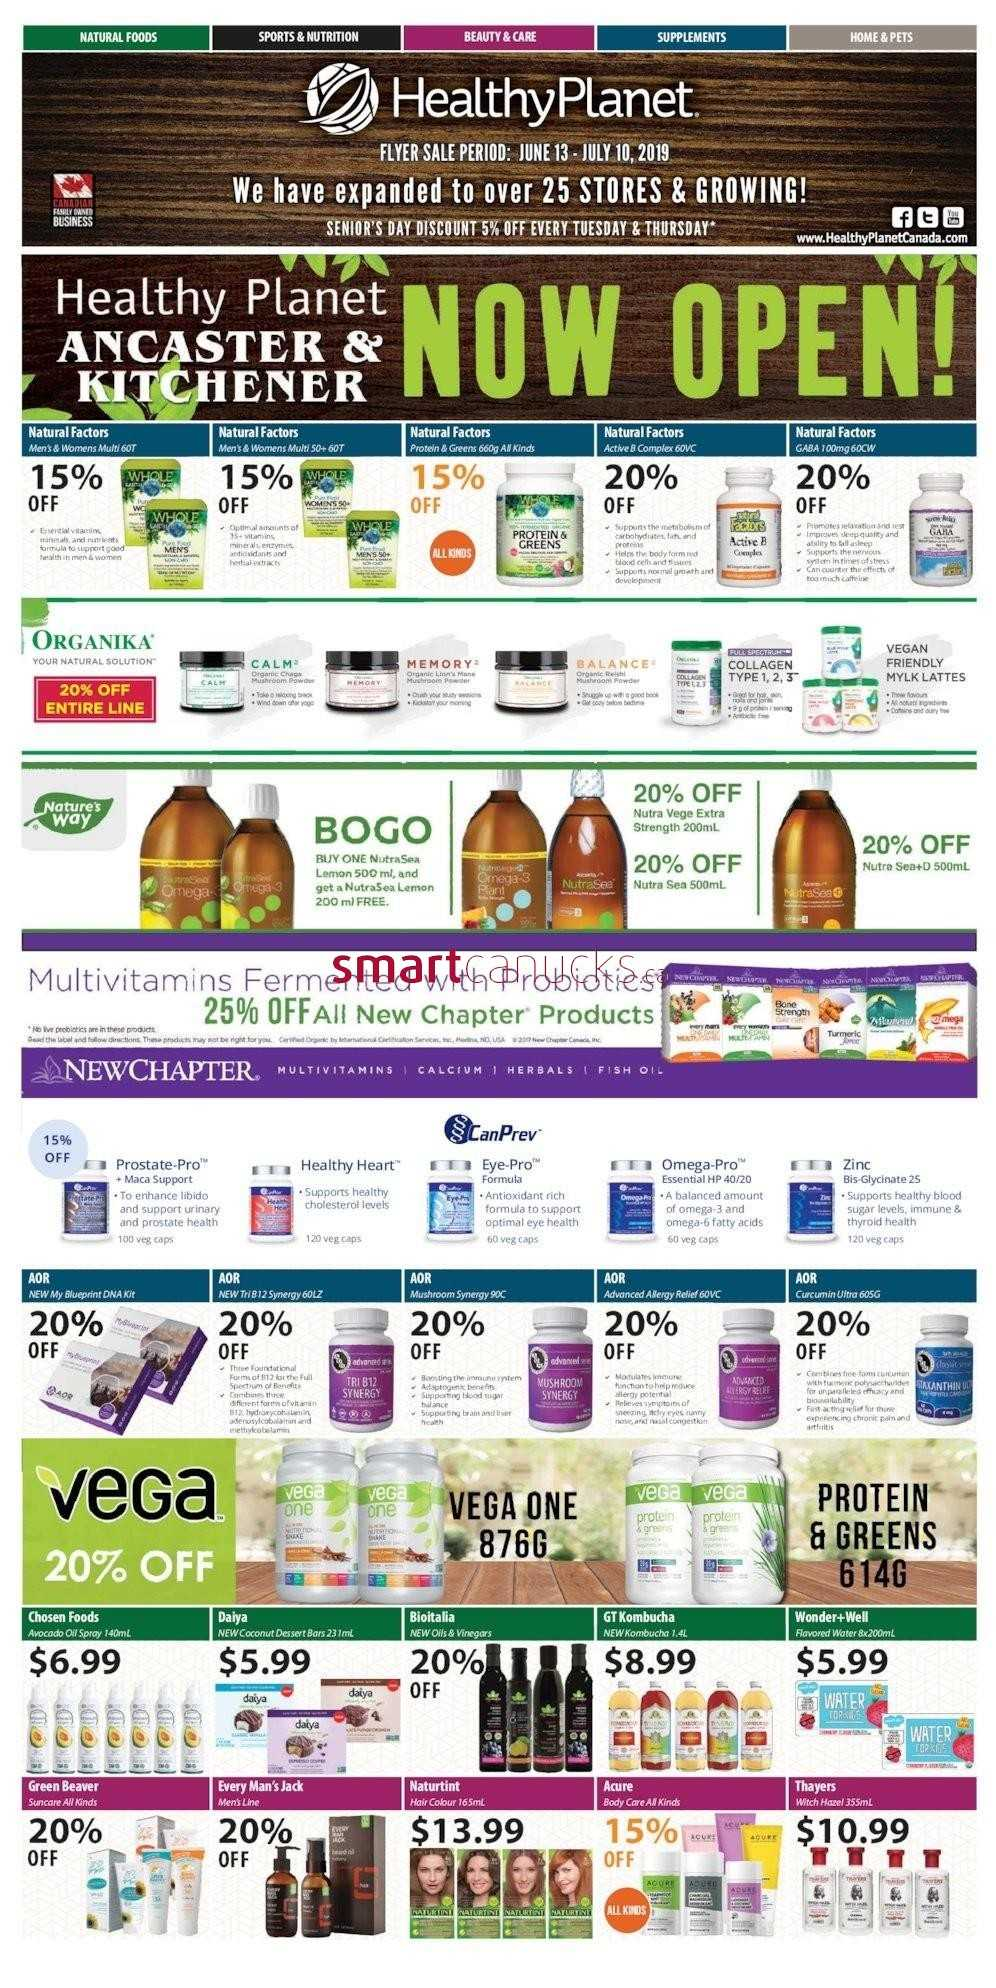 Healthy planet coupon codes 2019